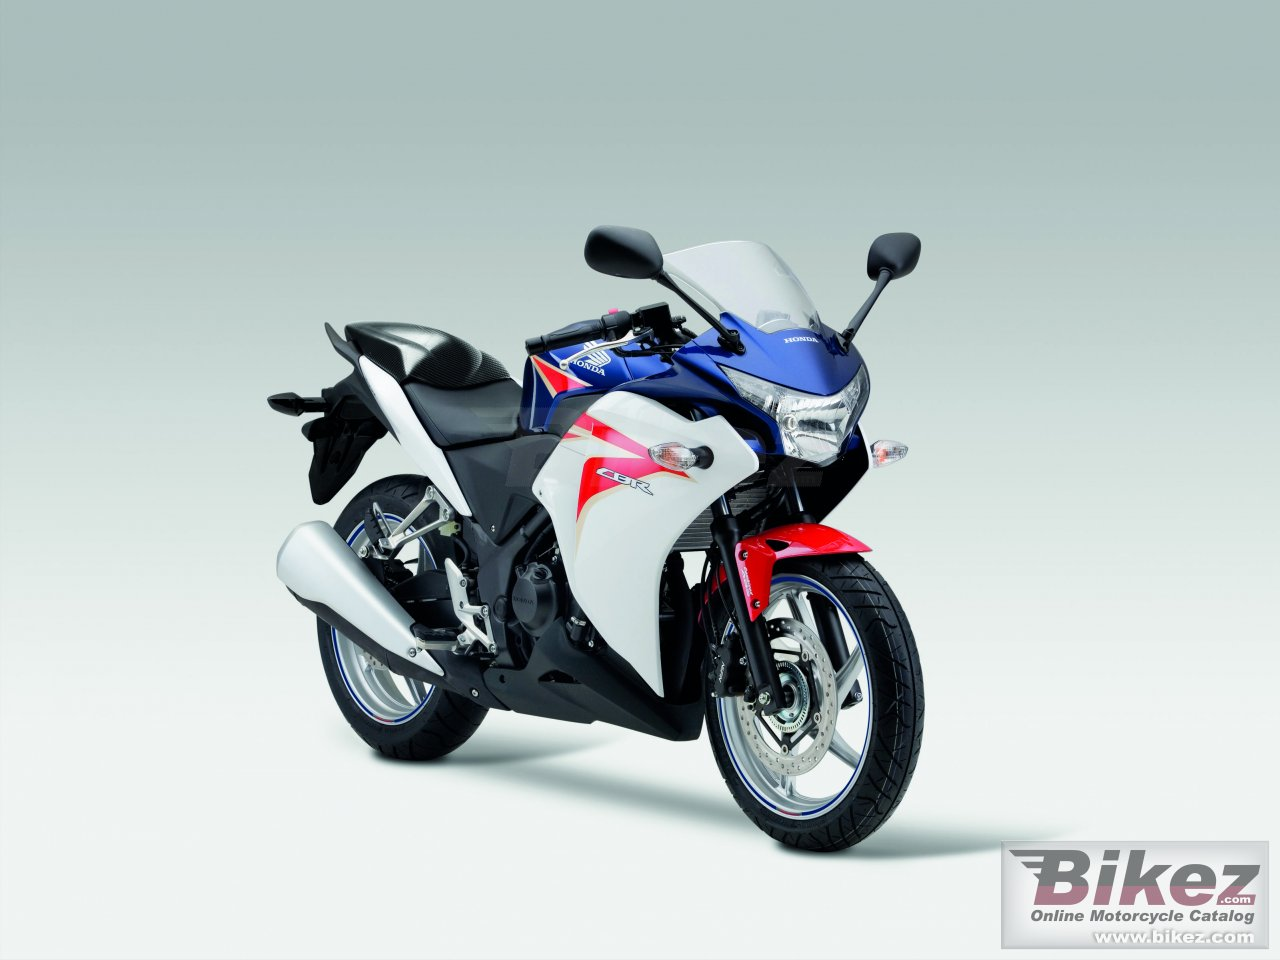 Big Honda cbr250r picture and wallpaper from Bikez.com